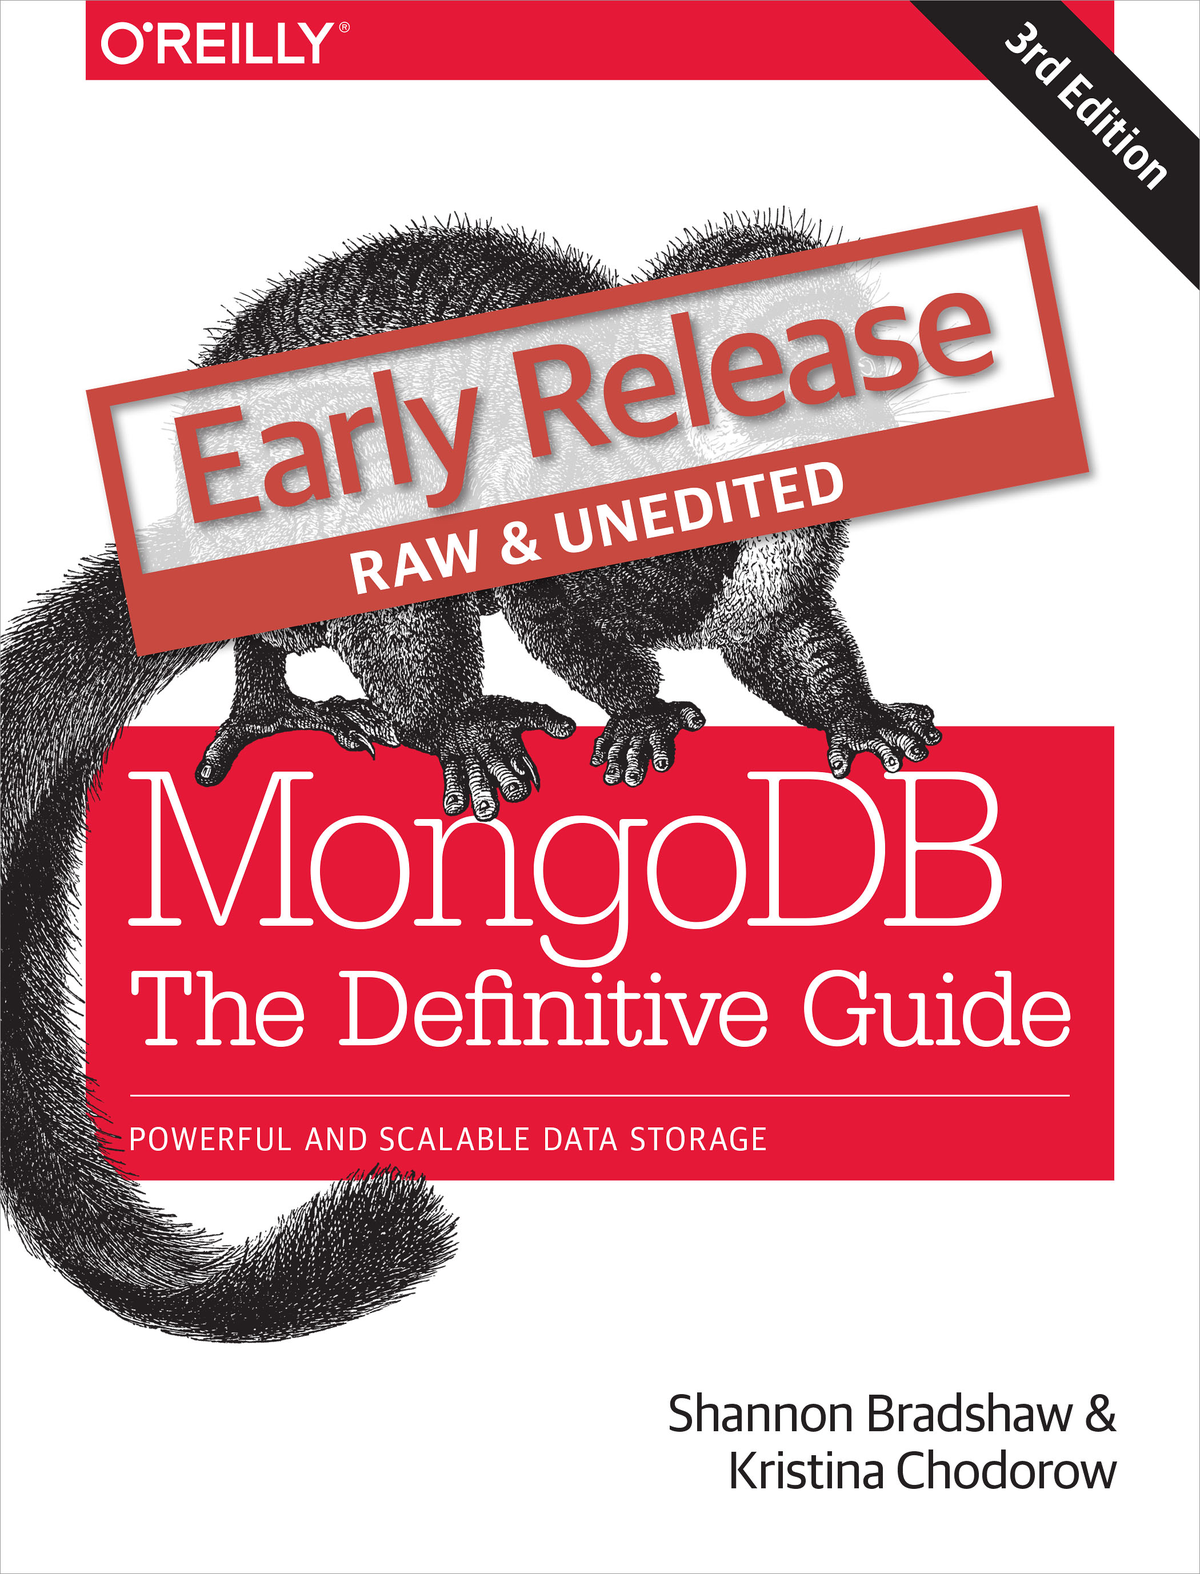 MongoDB: The Definitive Guide 3rd Edition Pdf Free Download